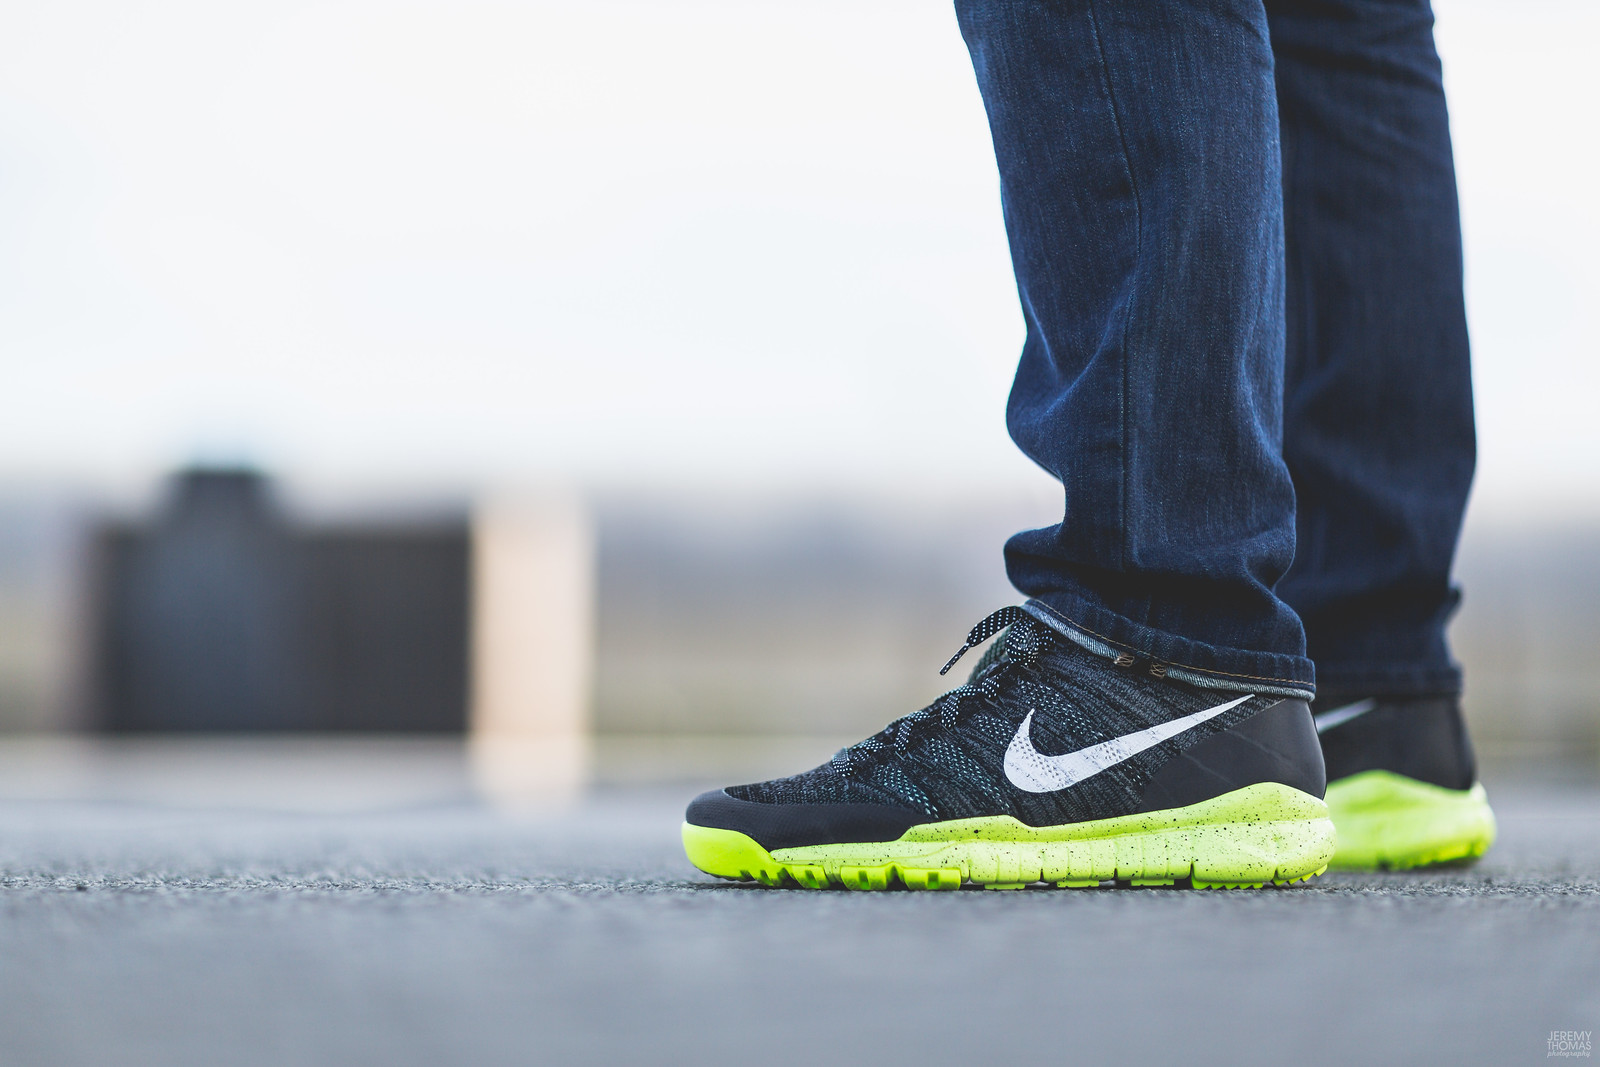 a0a25e7e747 ... good nike flyknit collection flickr nike flyknit trainer chukka sfb  dddcb 65710 ...